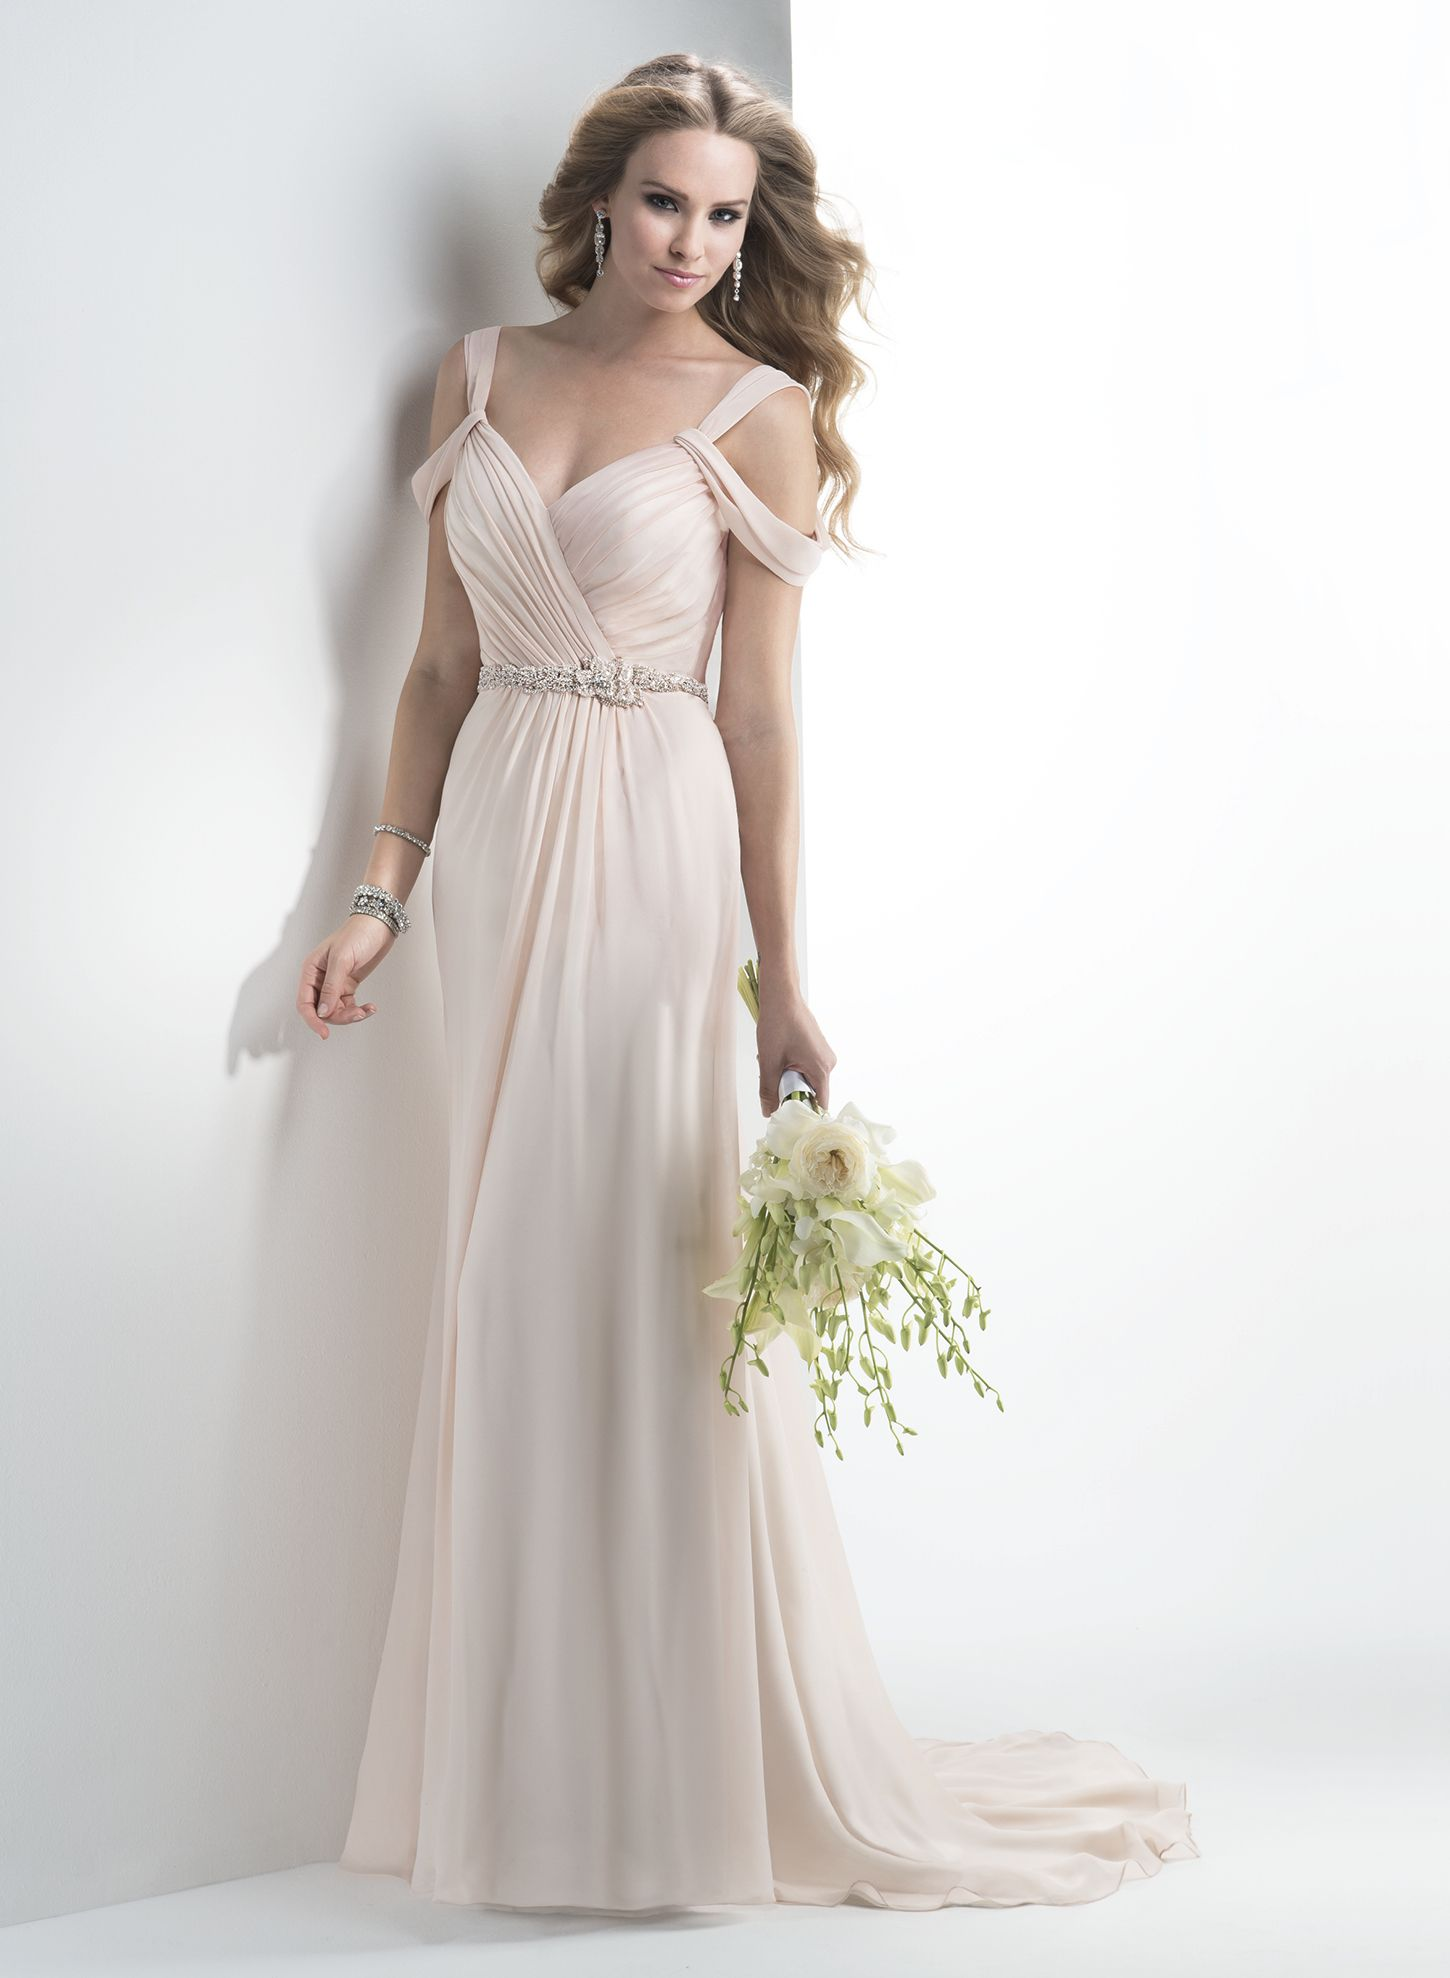 Maggie Sottero Wedding Dresses | Maggie sottero, Chiffon wedding ...